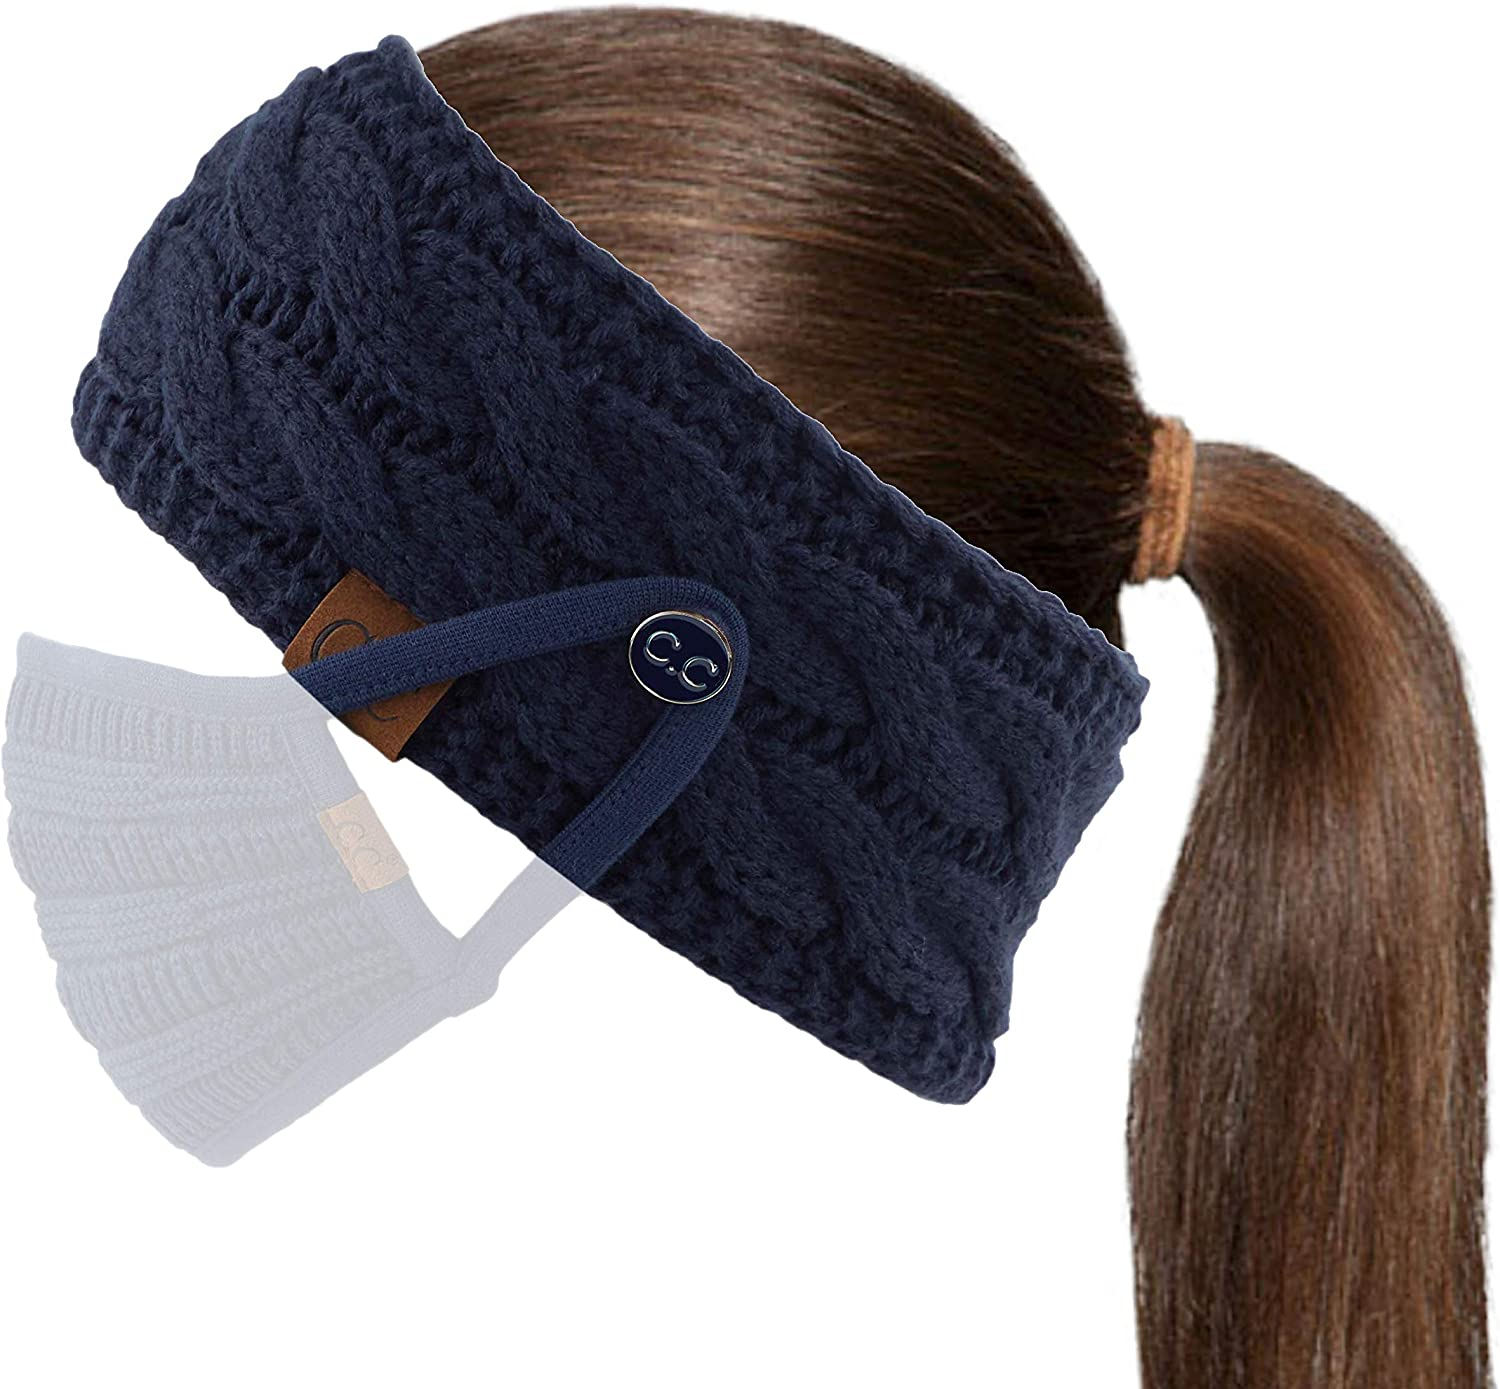 C.C Winter Fuzzy Fleece Lined Headwrap Headband Ranking TOP12 Many popular brands Ea Knitted Thick